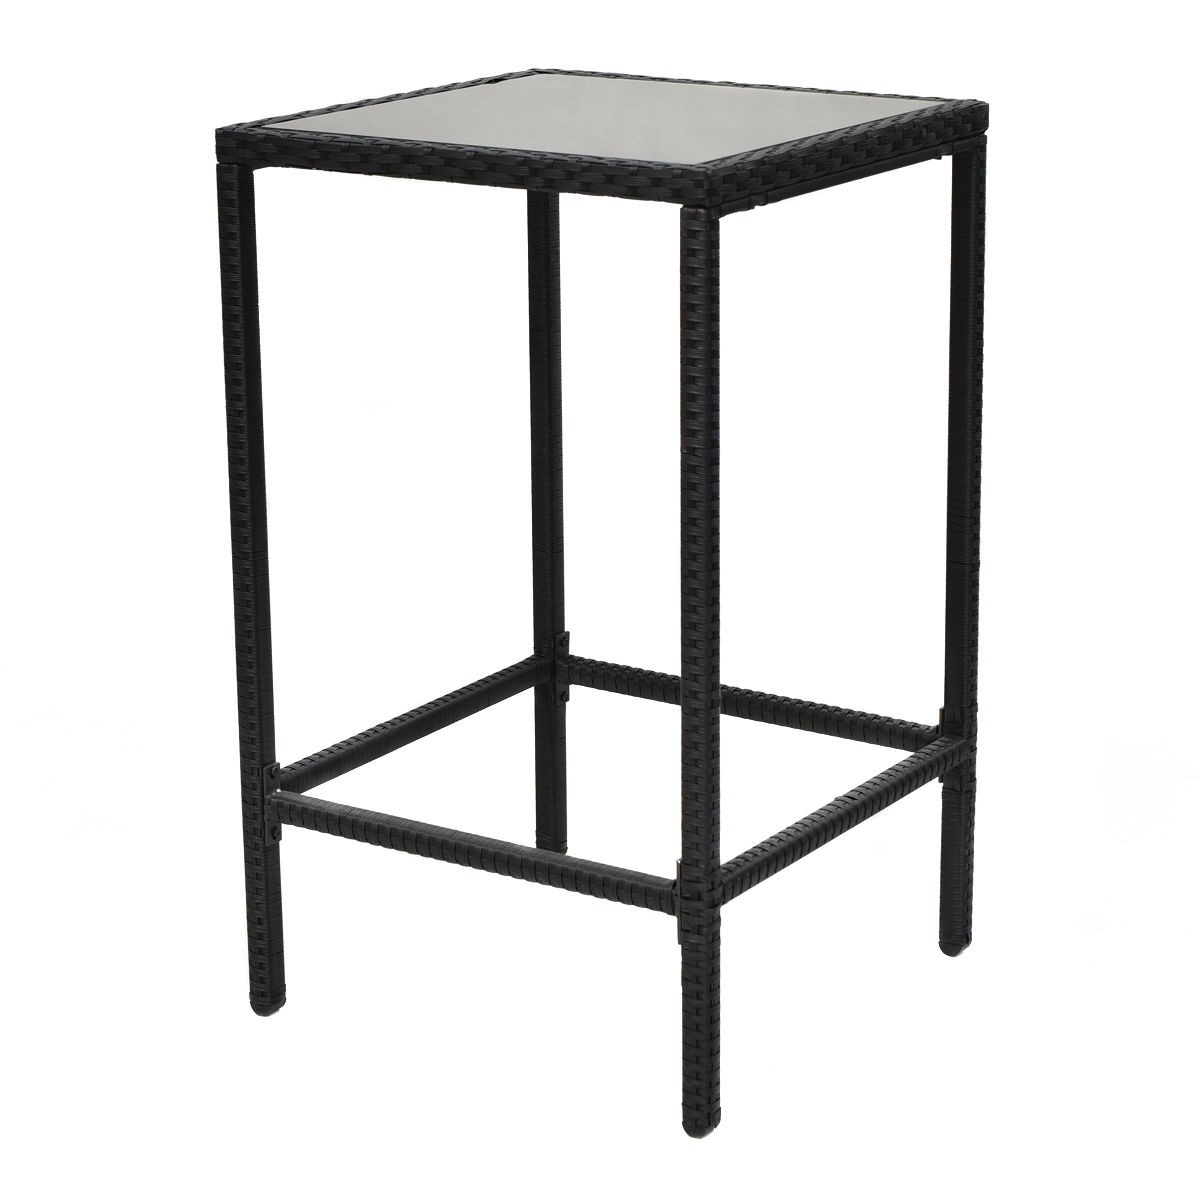 3pcs garden patio rattan wicker outdoor dining set table and 2 bar stool chairs ebay. Black Bedroom Furniture Sets. Home Design Ideas